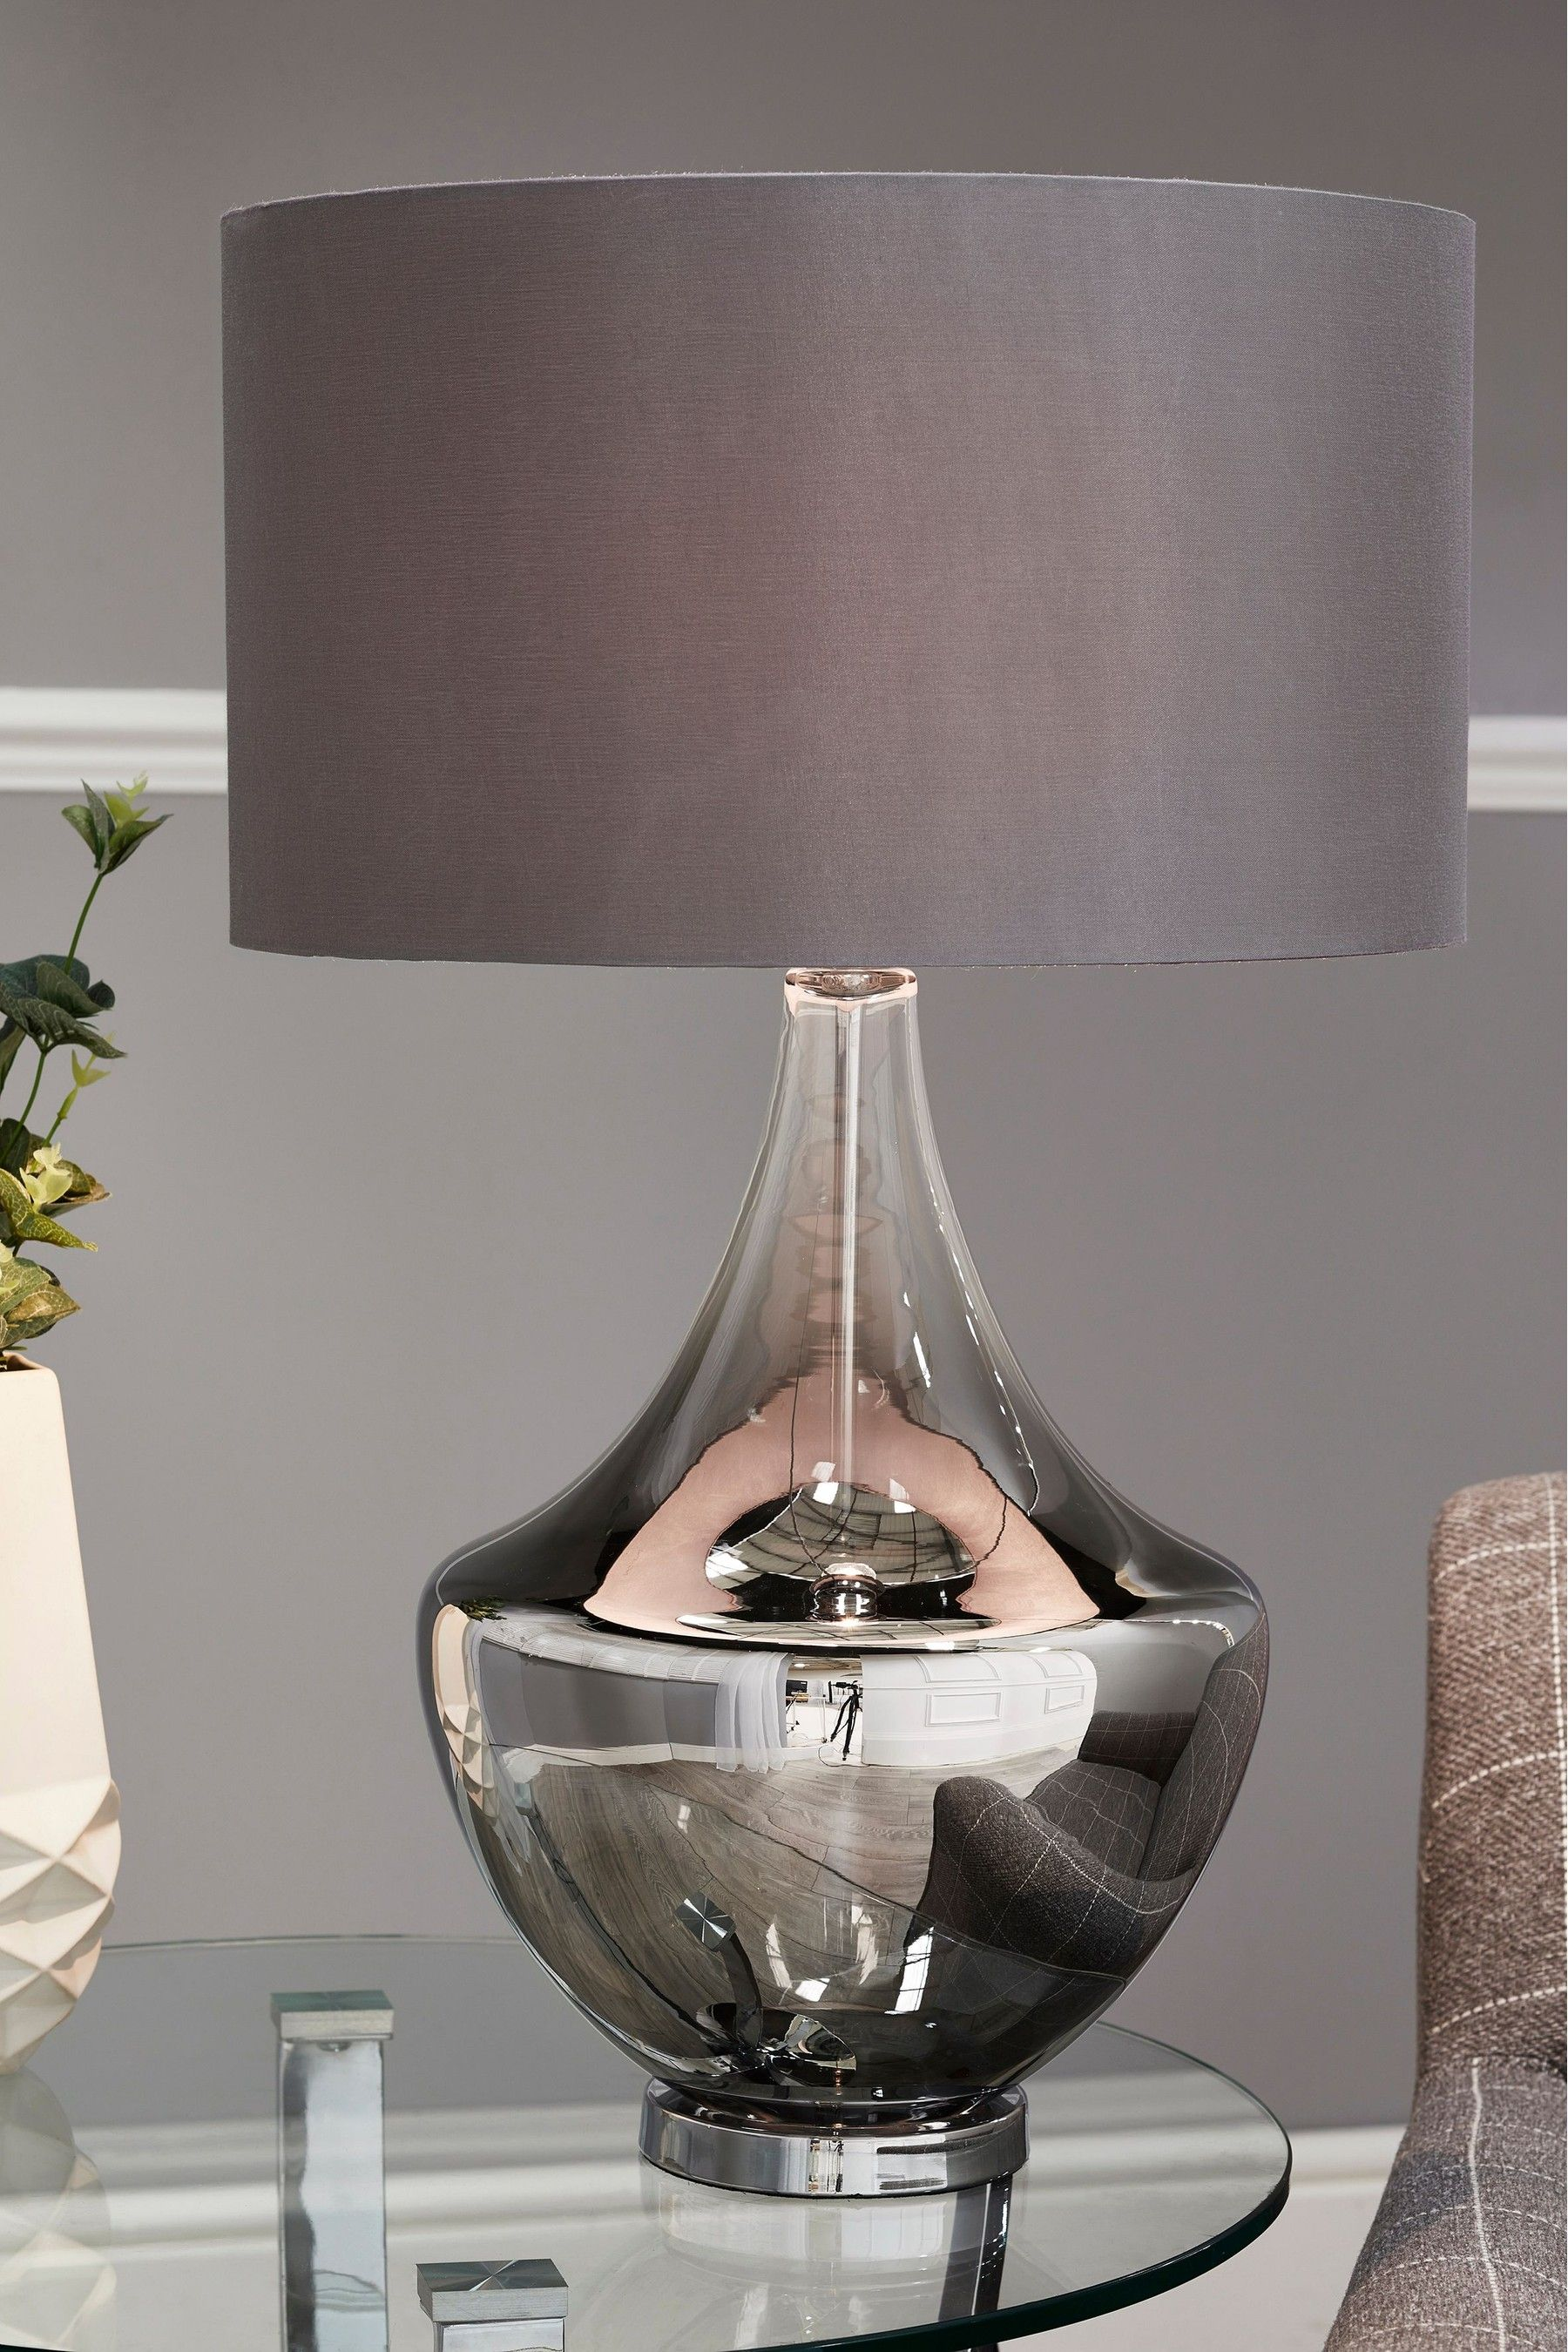 Next Blake Table Lamp Grey In 2020 Grey Table Lamps Table